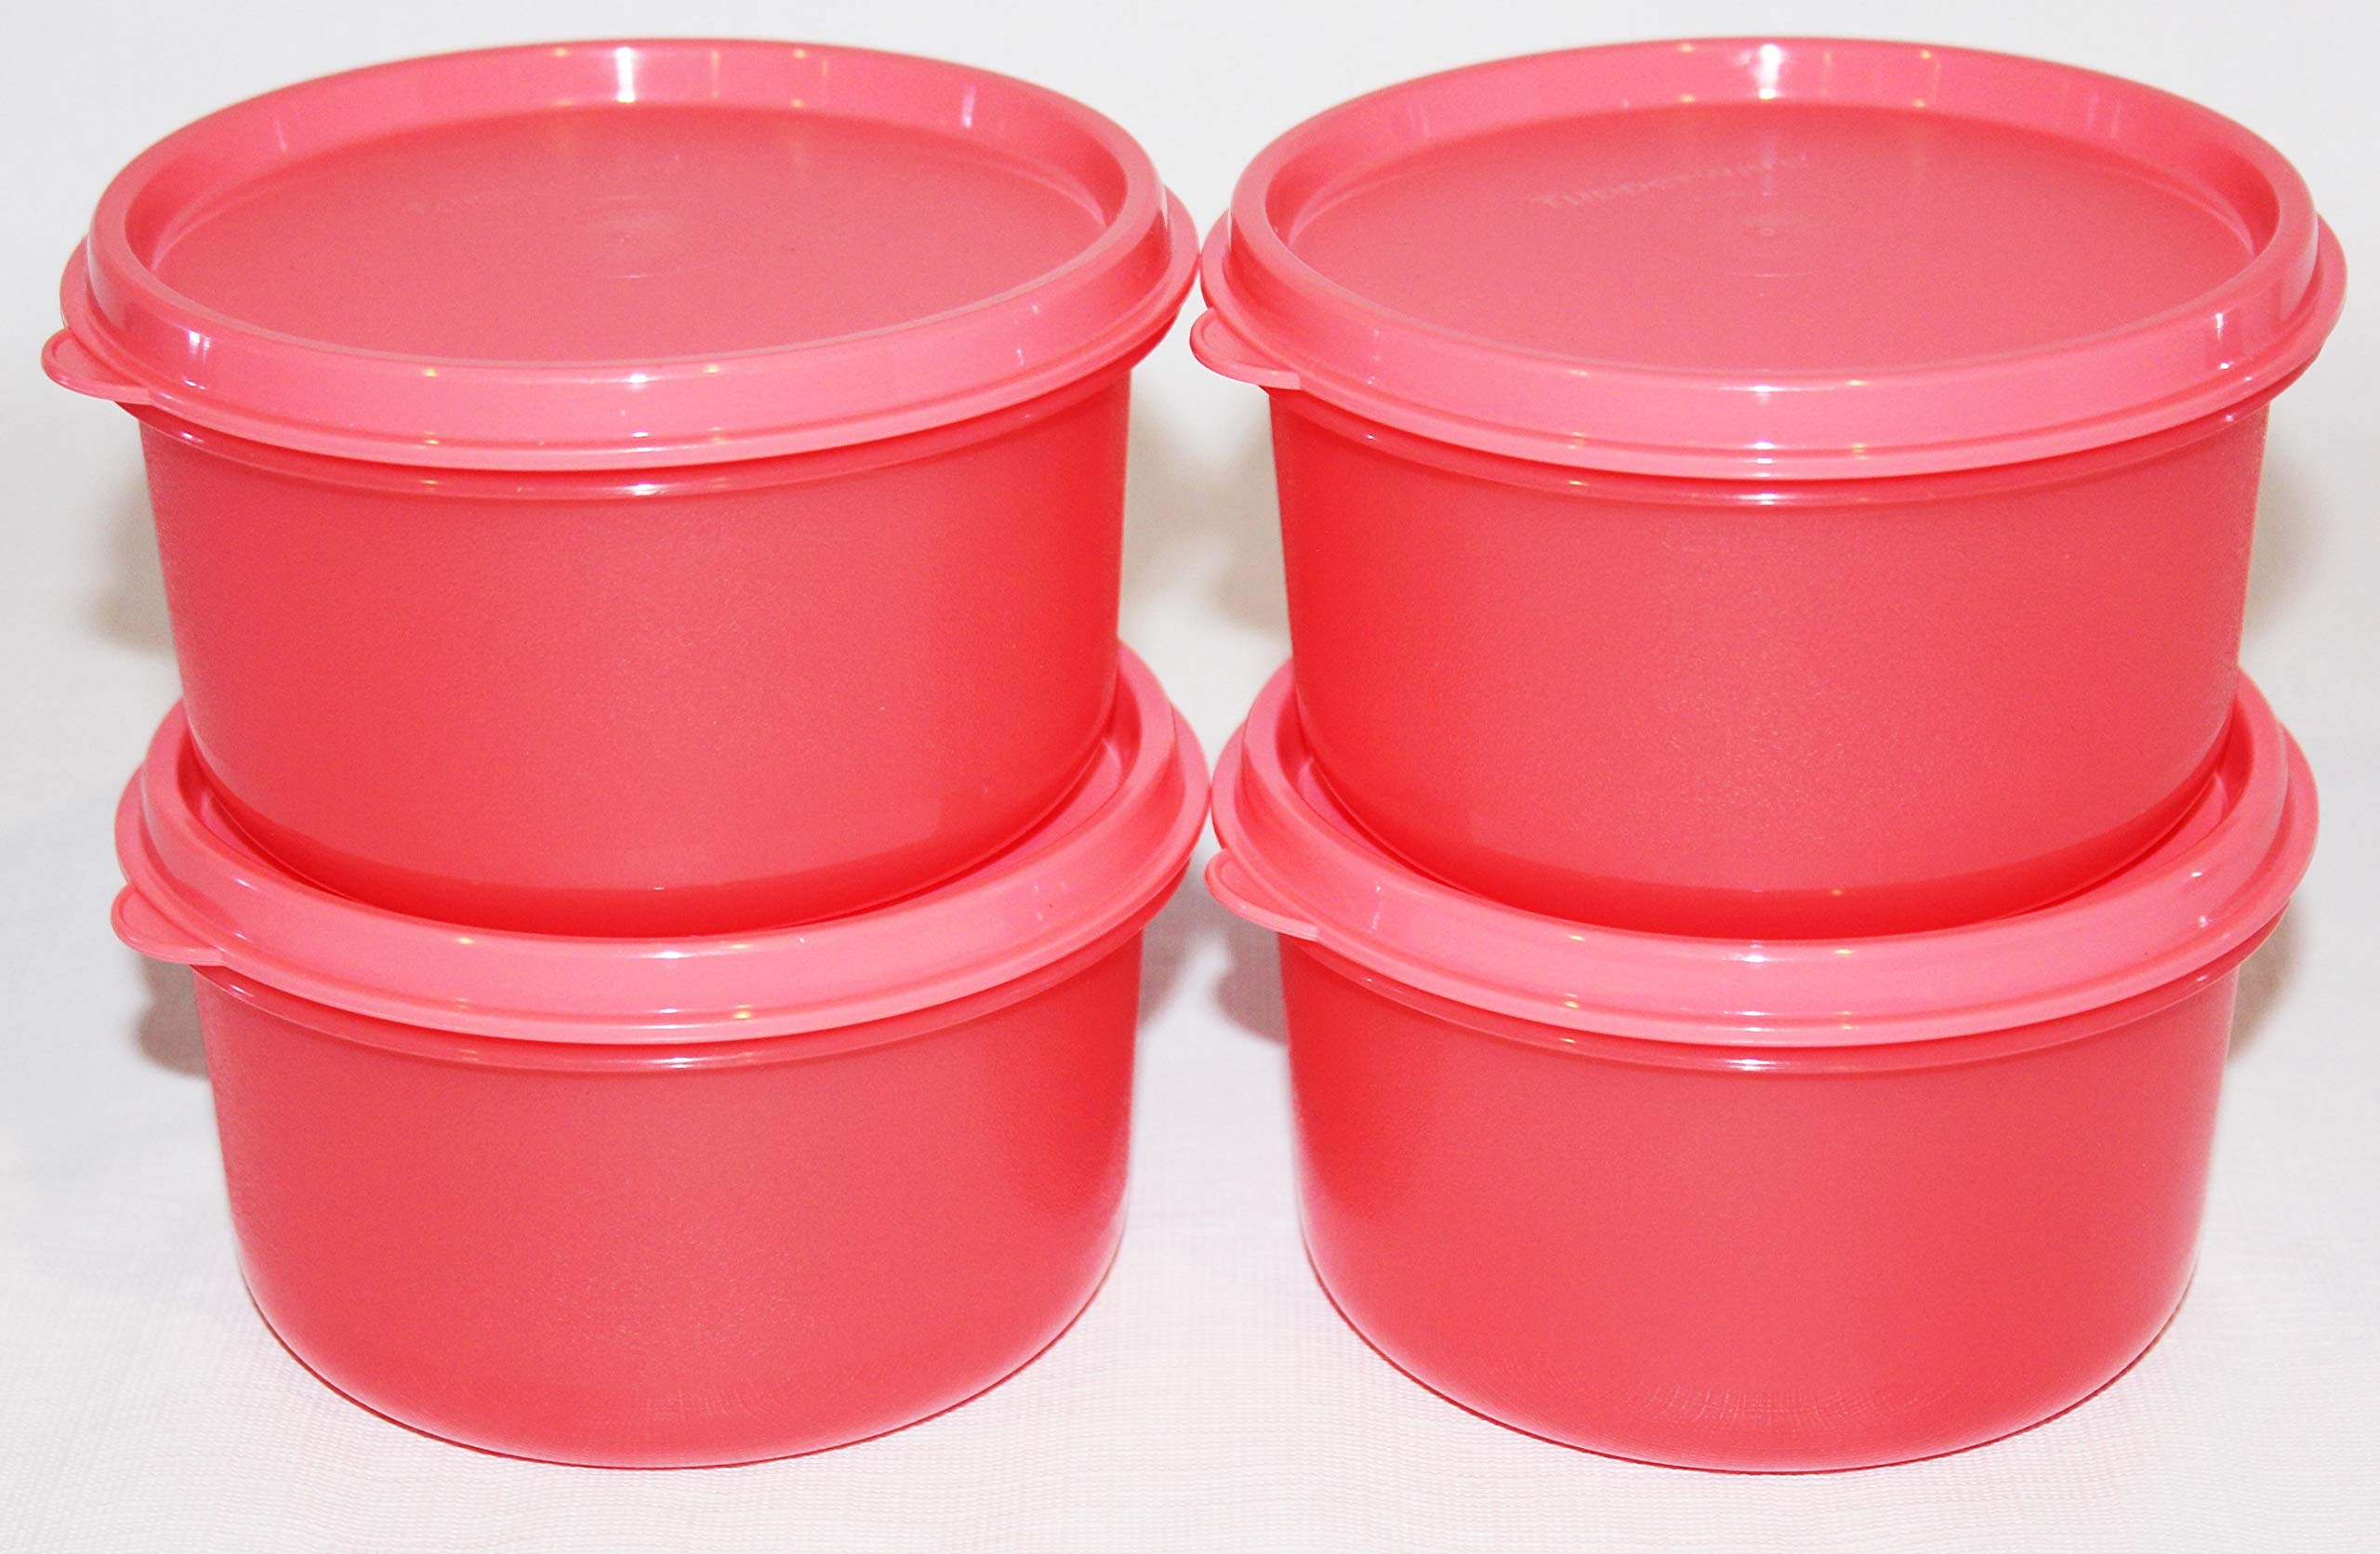 Tupperware Set of 4 Serving Center Bowls 14 Ounce Guava Pink